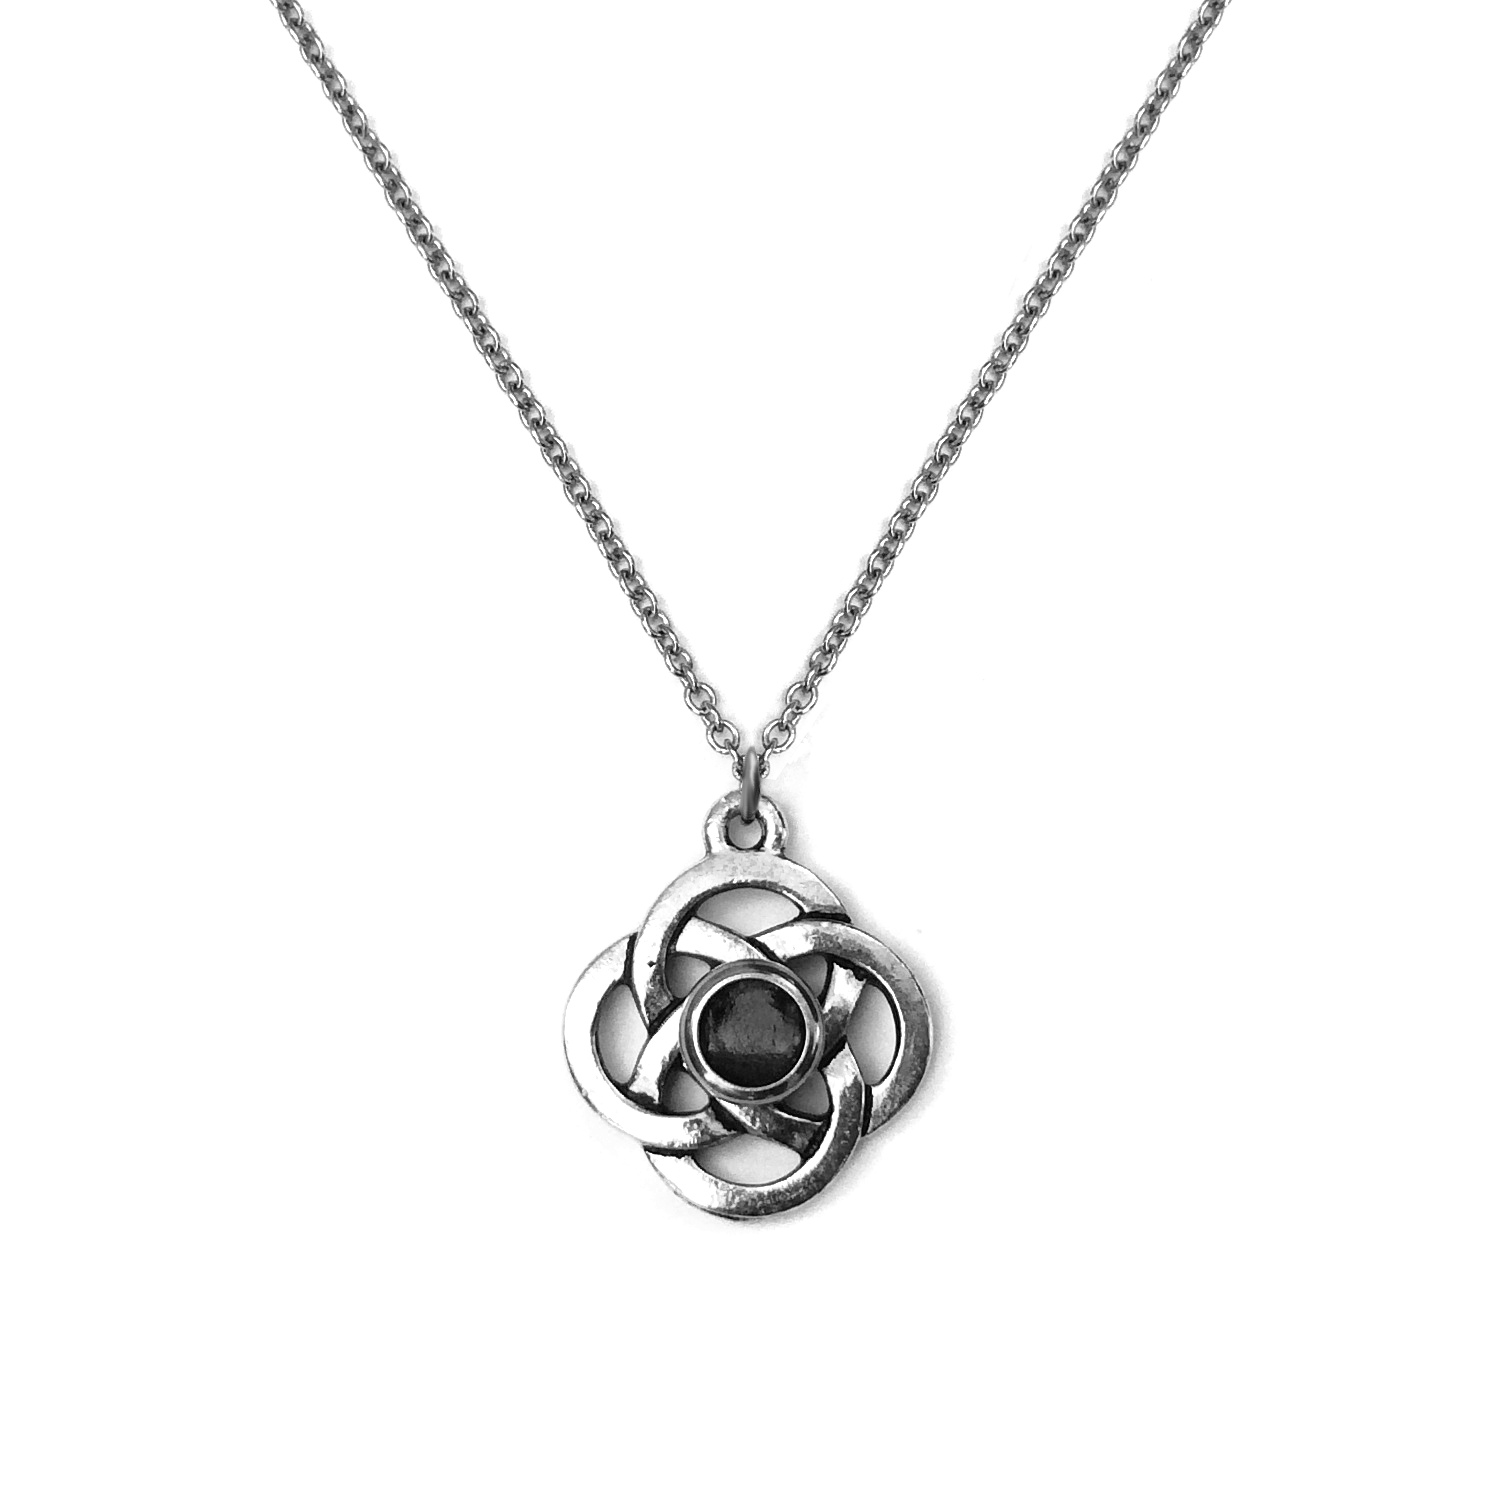 products knot pendant works necklace celtic traditions shield